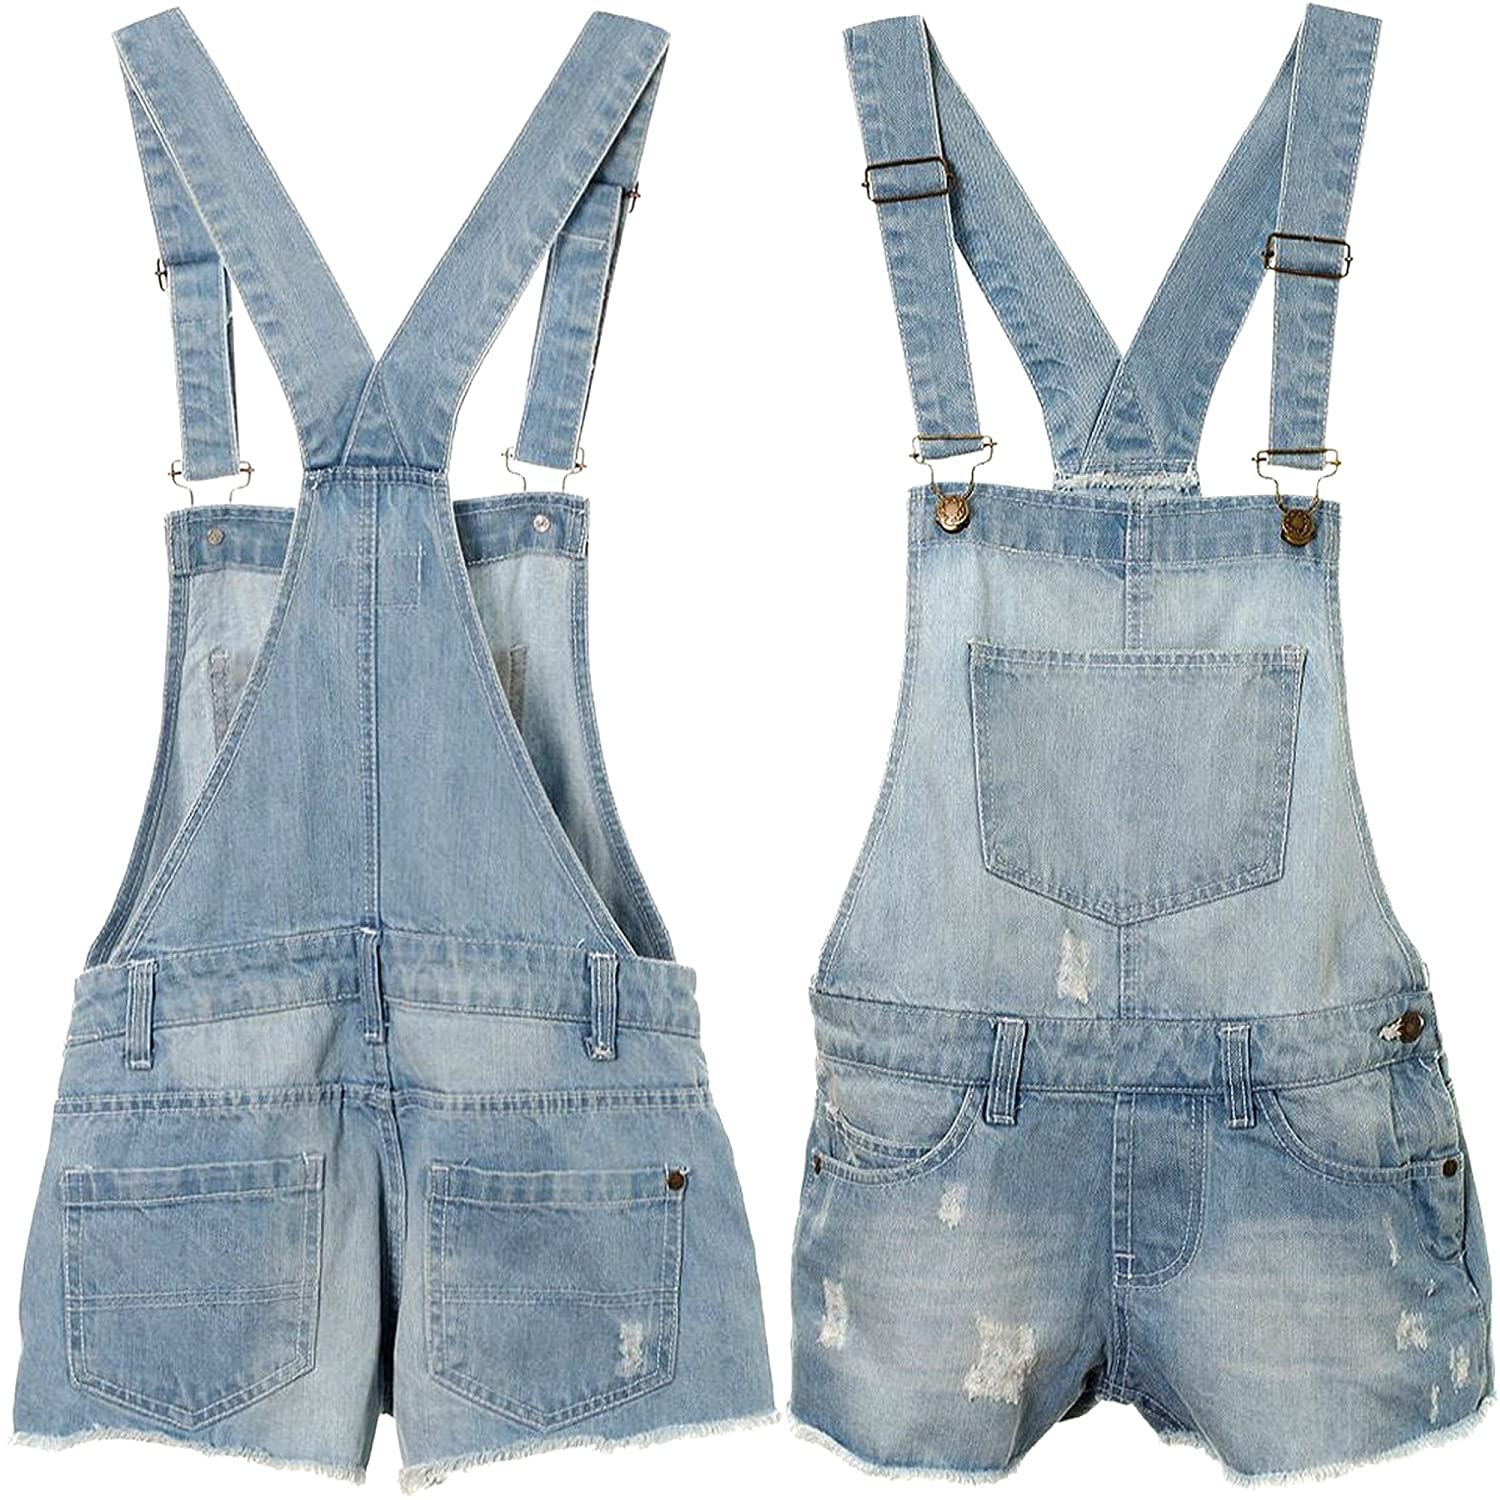 AEL Aelstores New Girls Kids Denim Dungaree Outfit Shorts Dress Jumpsuit Party Size 3-14 Years Colour Stone Wash Size